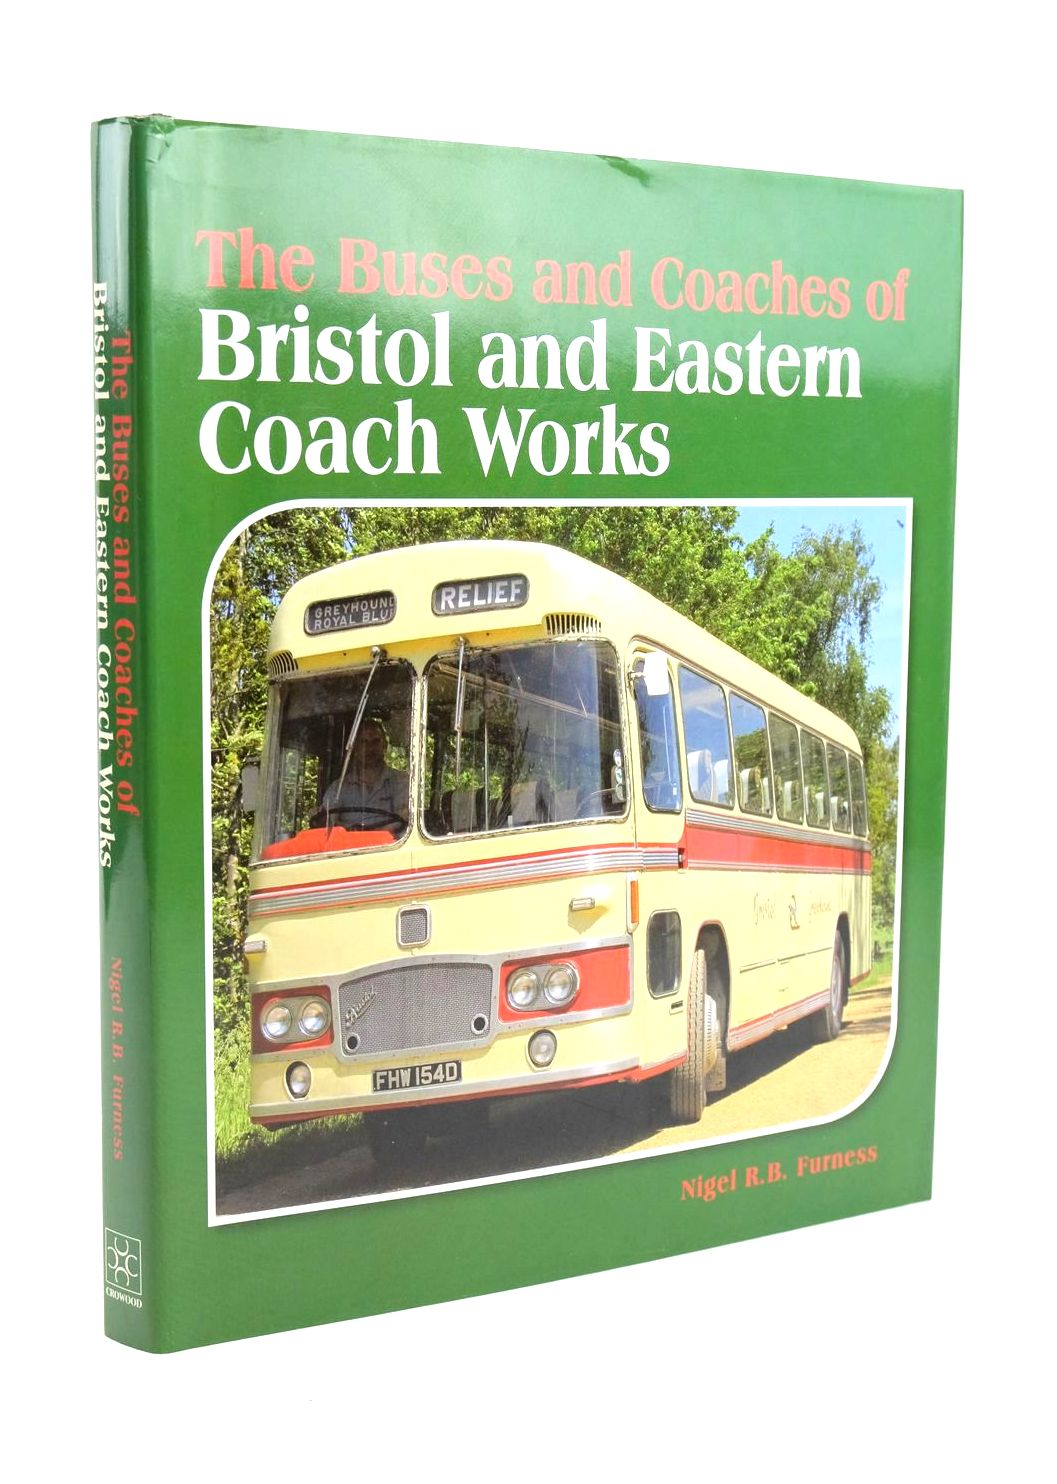 Photo of THE BUSES AND COACHES OF BRISTOL AND EASTERN COACH WORKS written by Furness, Nigel R.B. published by The Crowood Press (STOCK CODE: 1320160)  for sale by Stella & Rose's Books